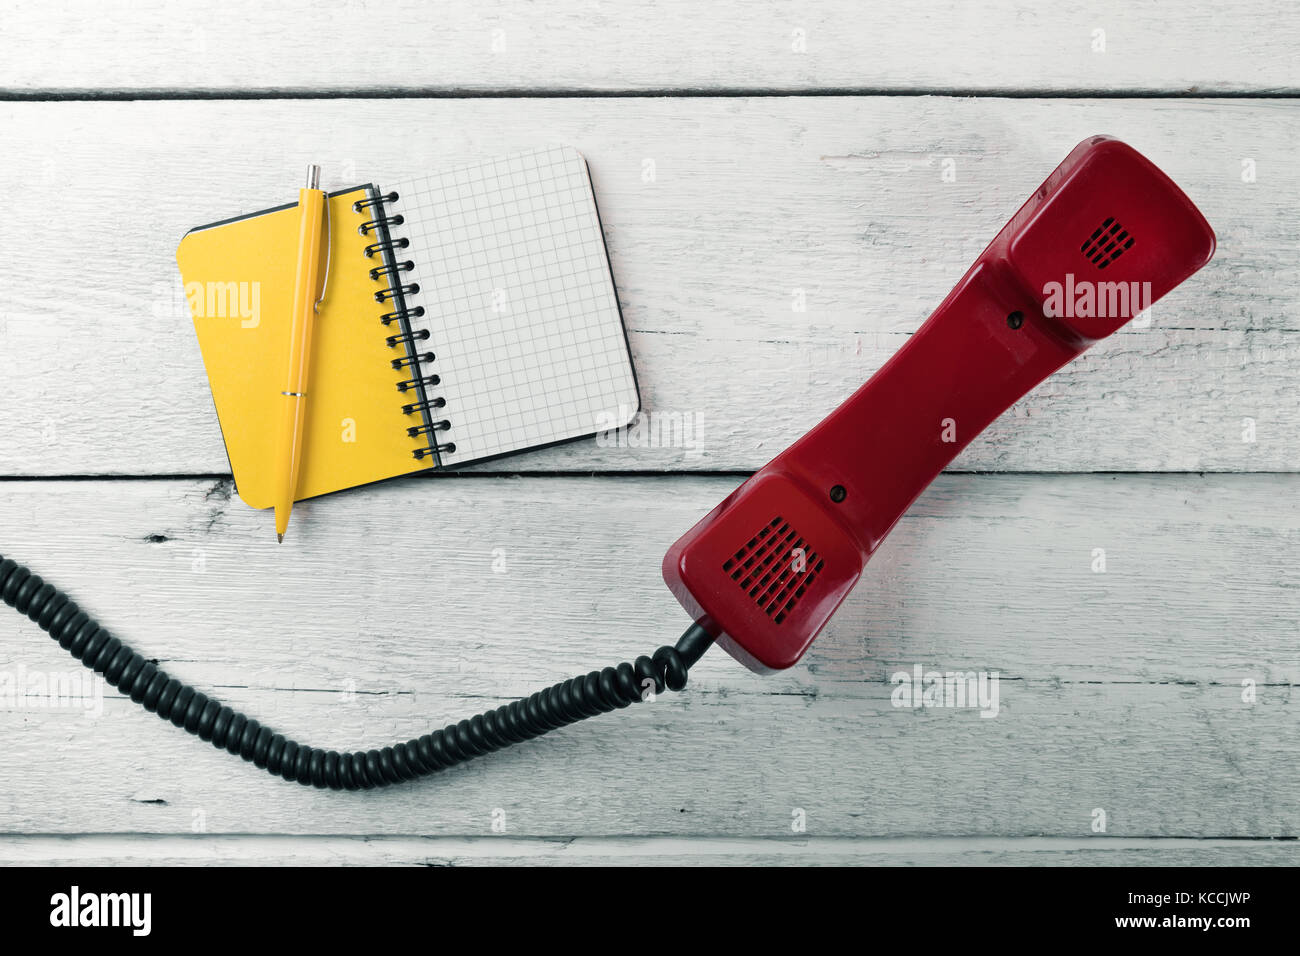 phone handset and blank notebook on white wood table - Stock Image